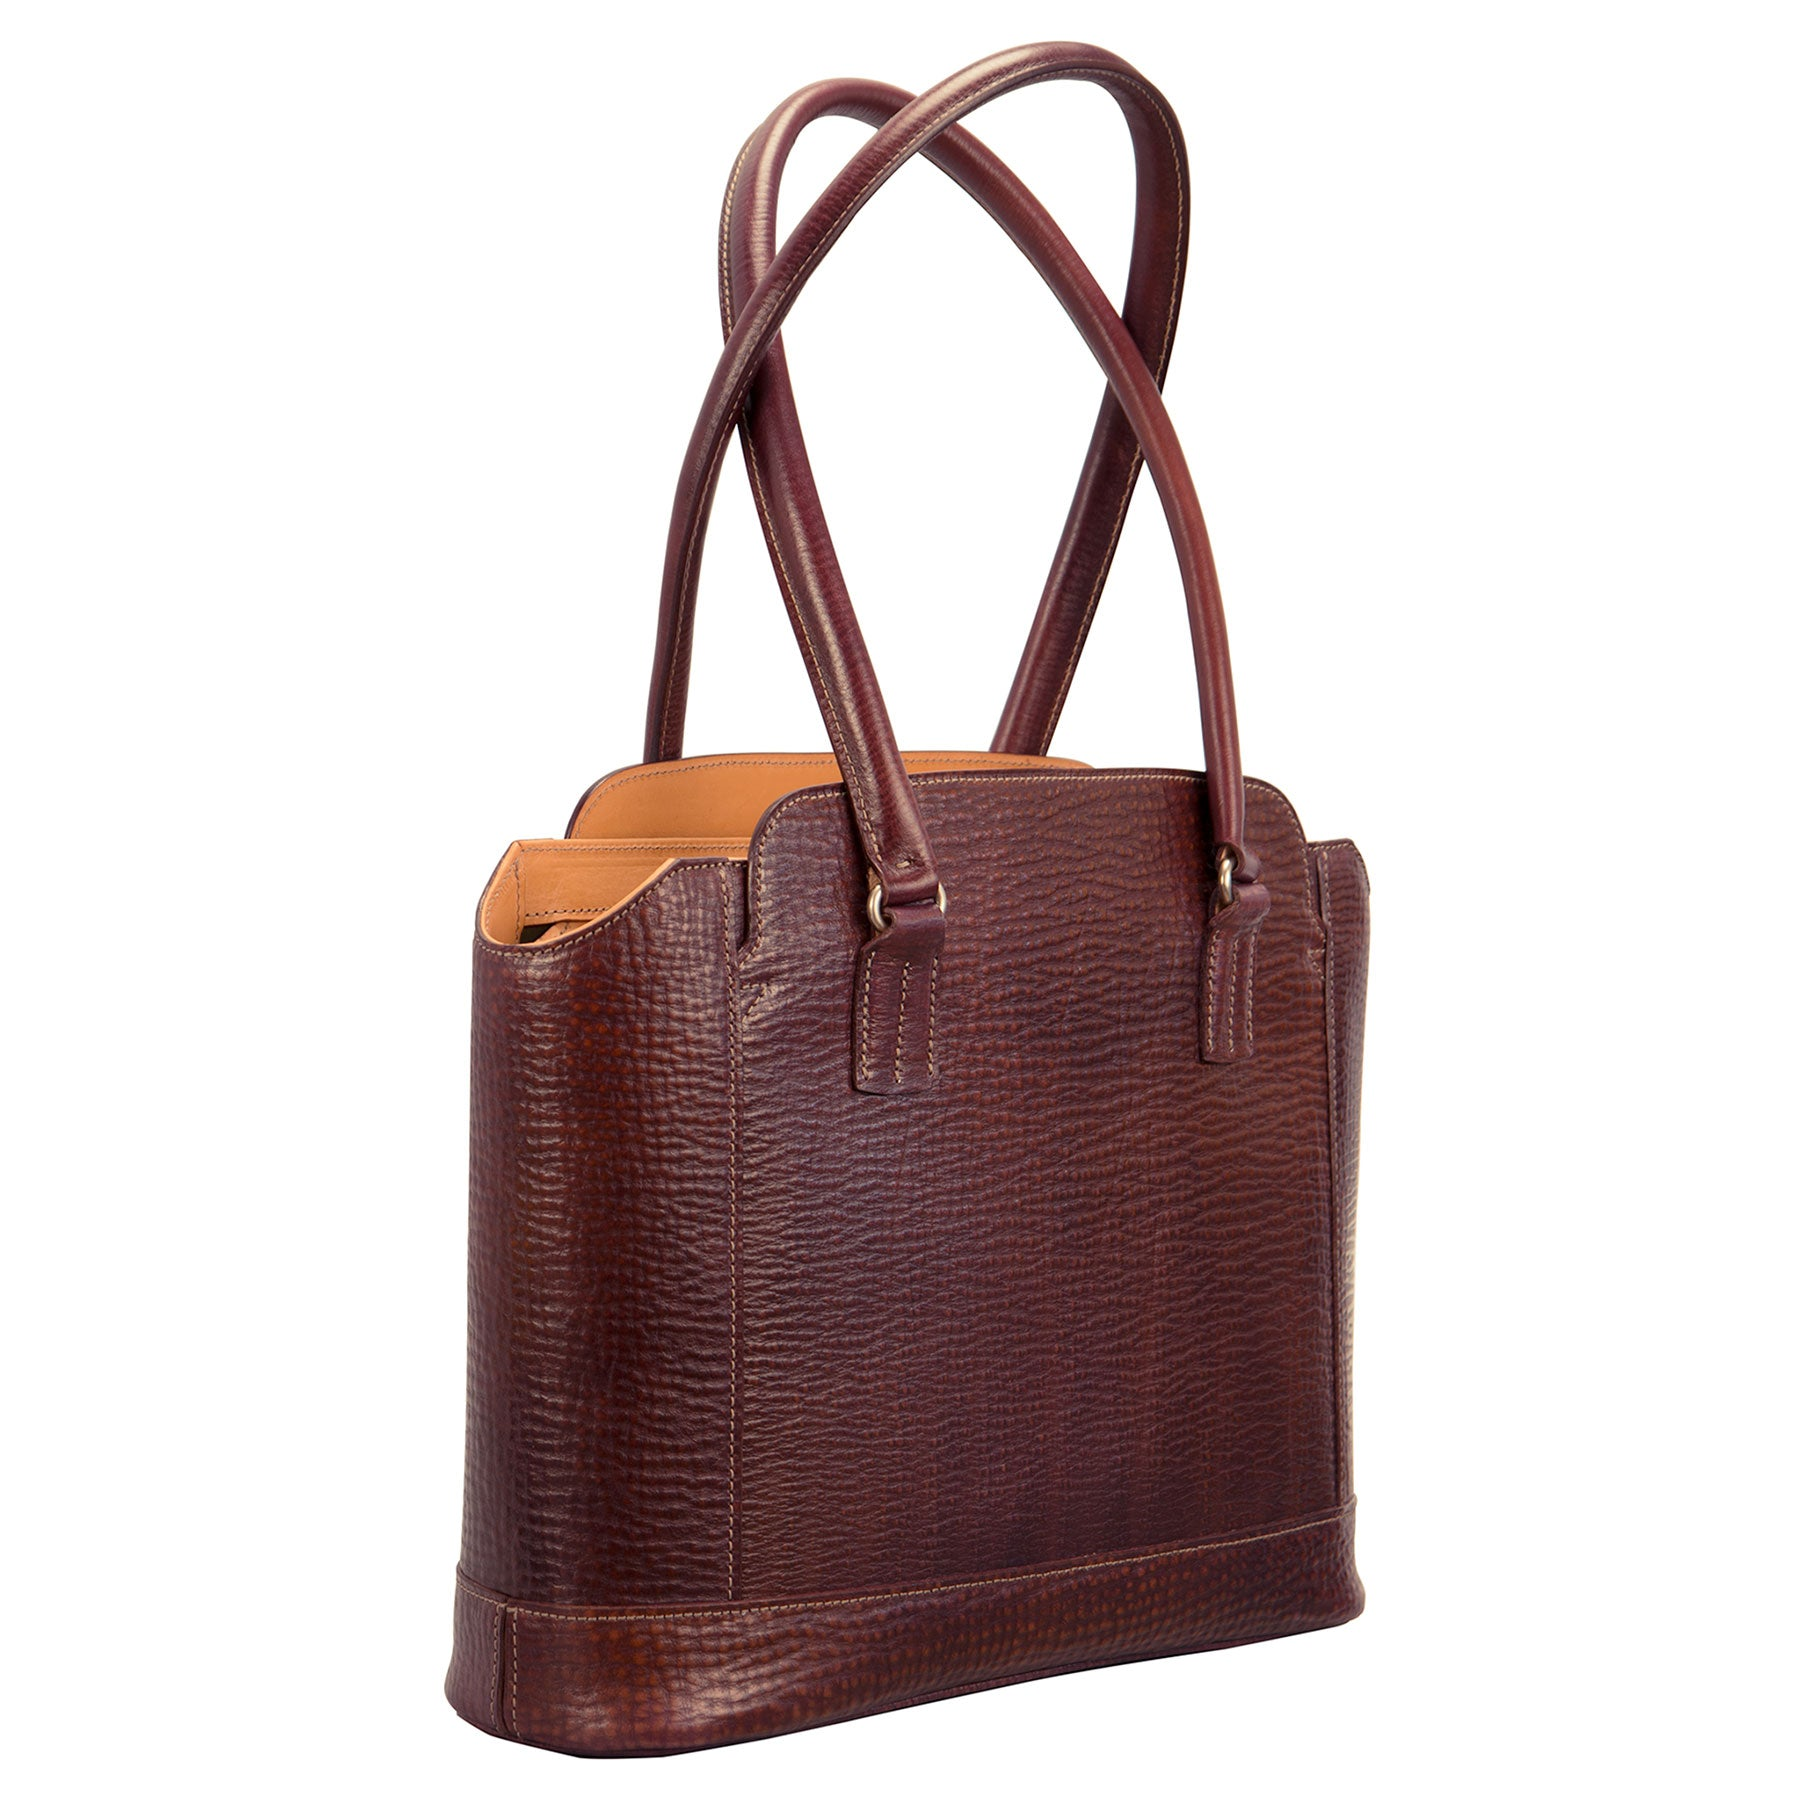 Glaser Designs City Tote with Long Handles. Hand colored Sienna vegetable tanned leather. Solid brass hardware. Made to measure, custom sizes.